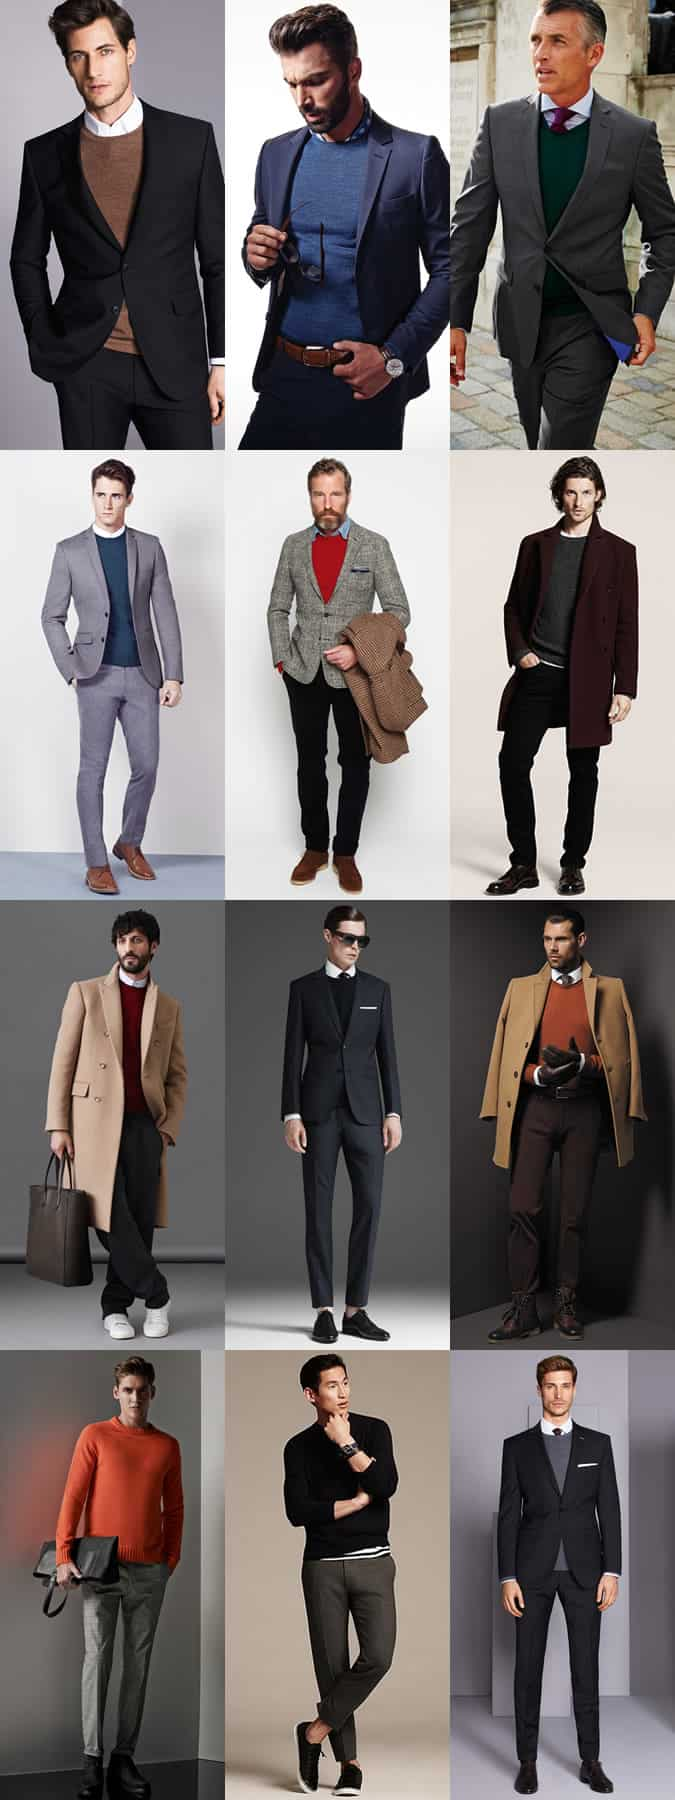 Men's Smart Crew Neck Jumpers Paired With Tailoring and Suits - Outfit Inspiration Lookbook